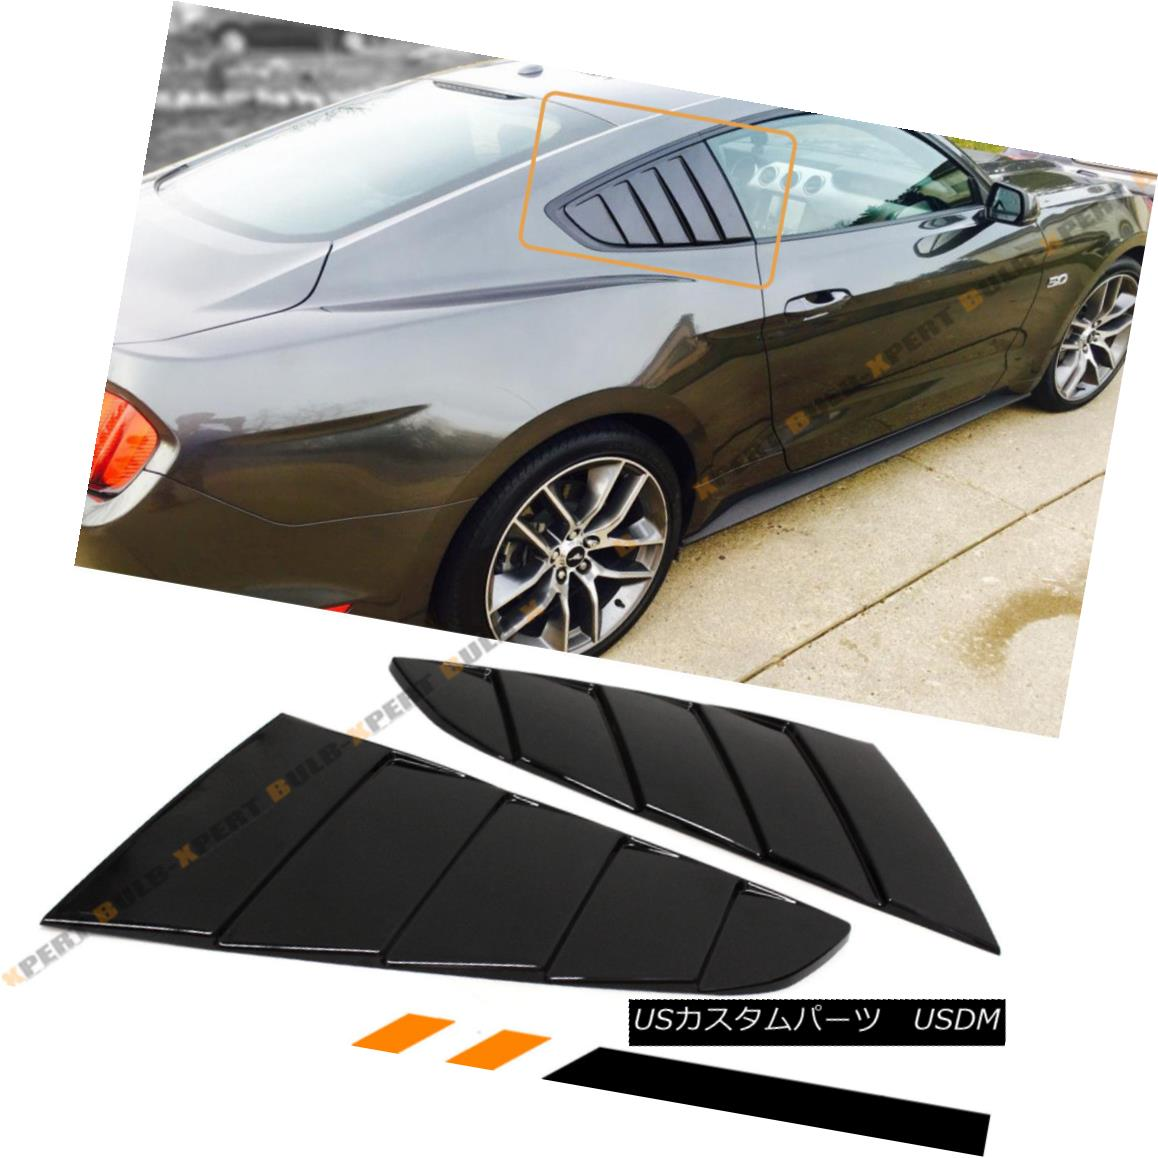 エアロパーツ For 2015-17 Ford Mustang Glossy Black Side Vent Window 1/4 Quarter Scoop Louver 2015-17 Ford Mustang Glossyブラックサイドベントウィンドウ1/4 Quarter Scoop Louver